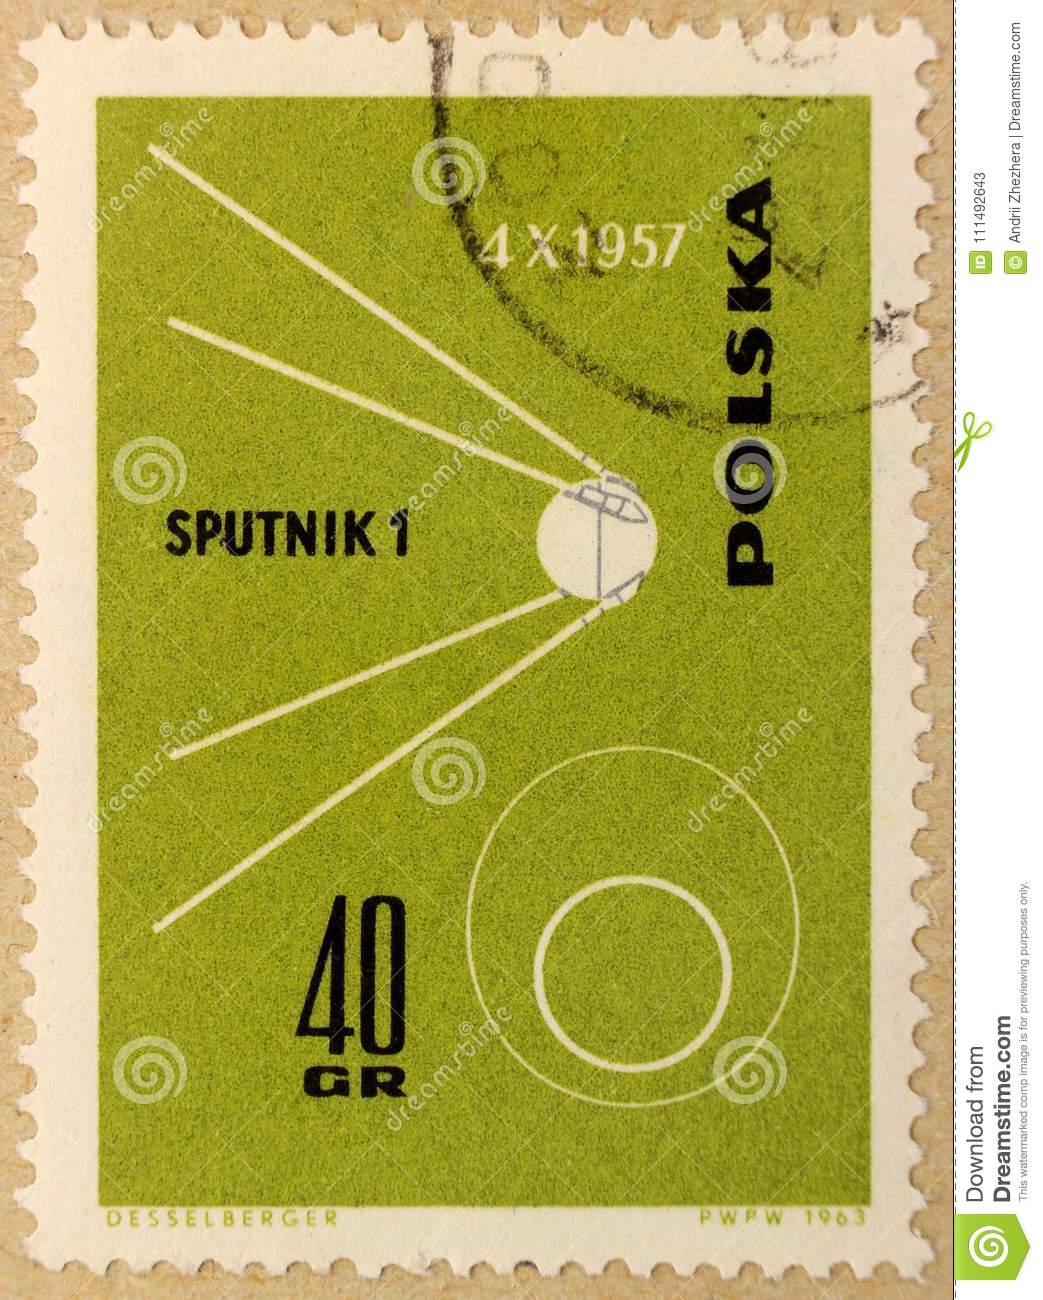 Old post stamp of Poland, dedicated to space exploration and first satellites.